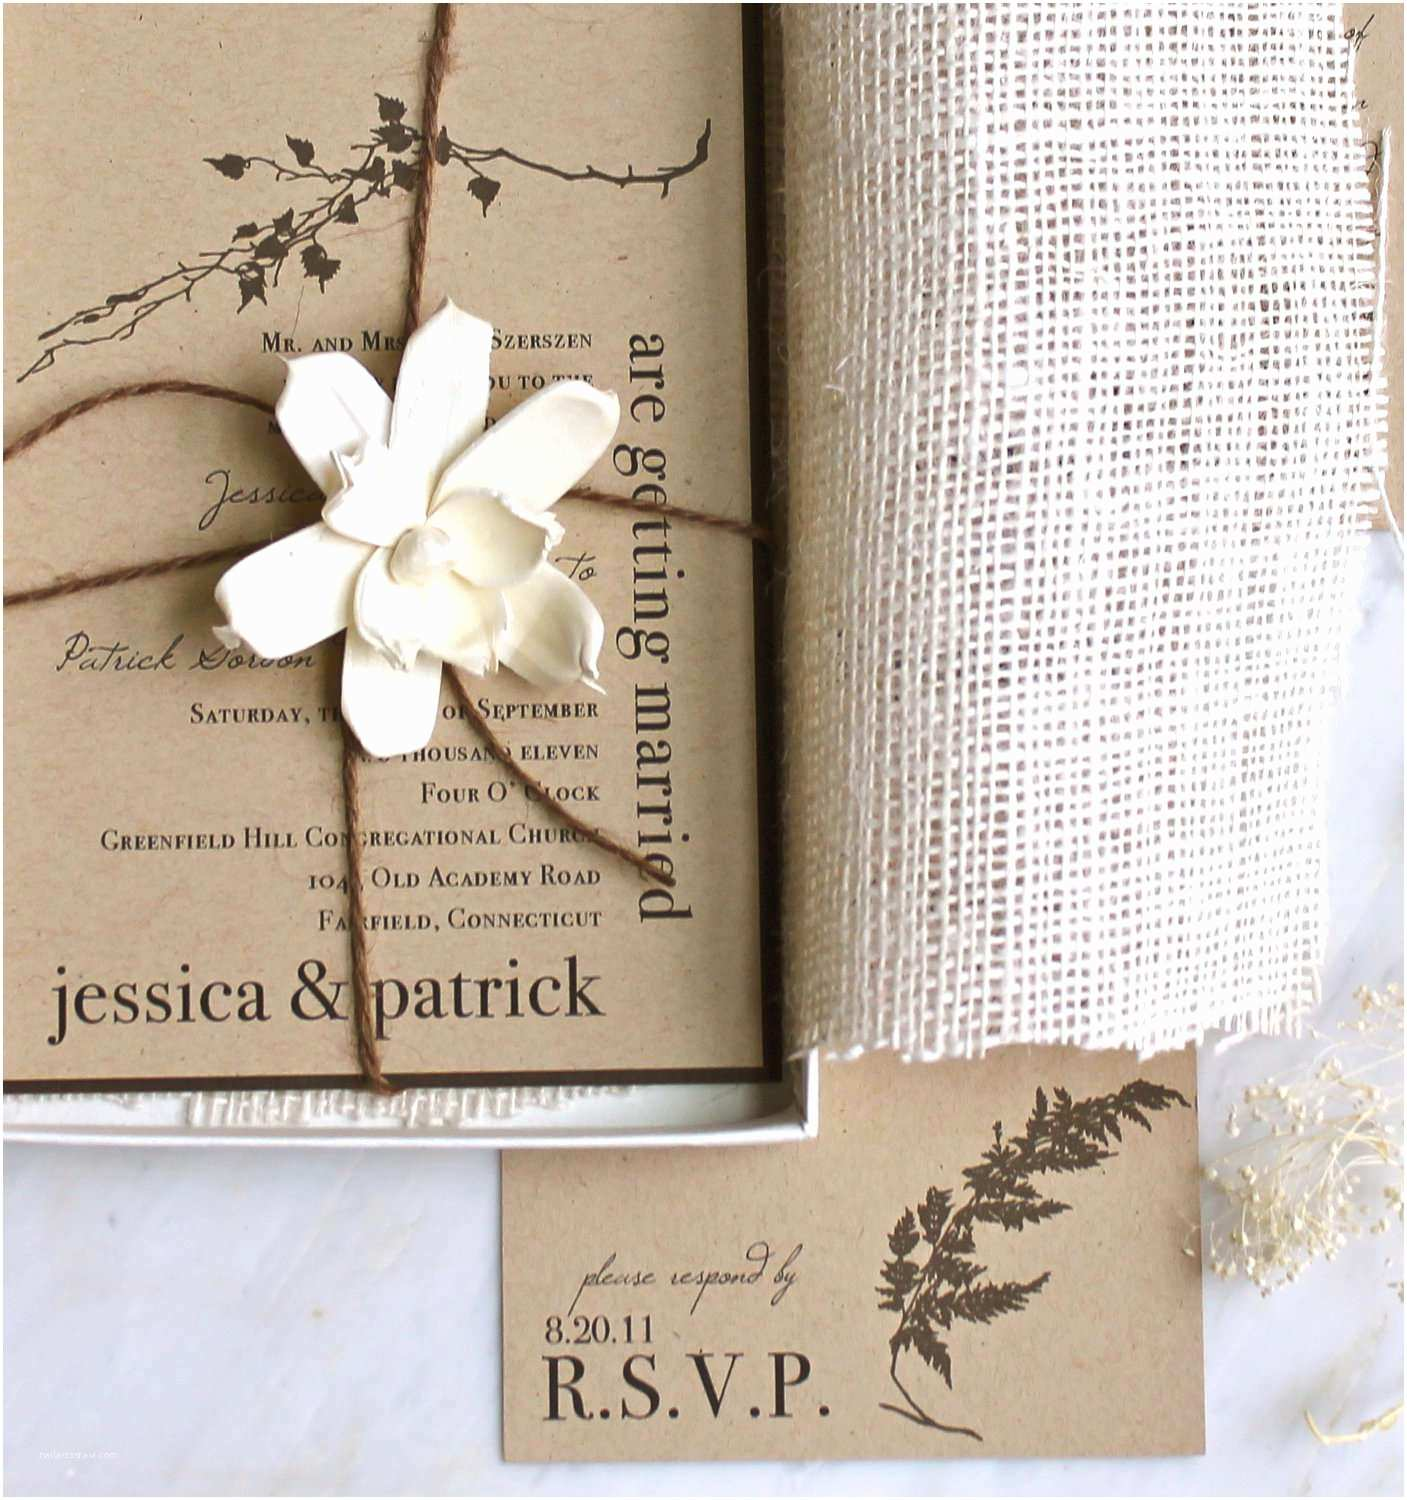 Make Your Own Wedding Invitations Free Design Your Own Wedding Invitations Line Free